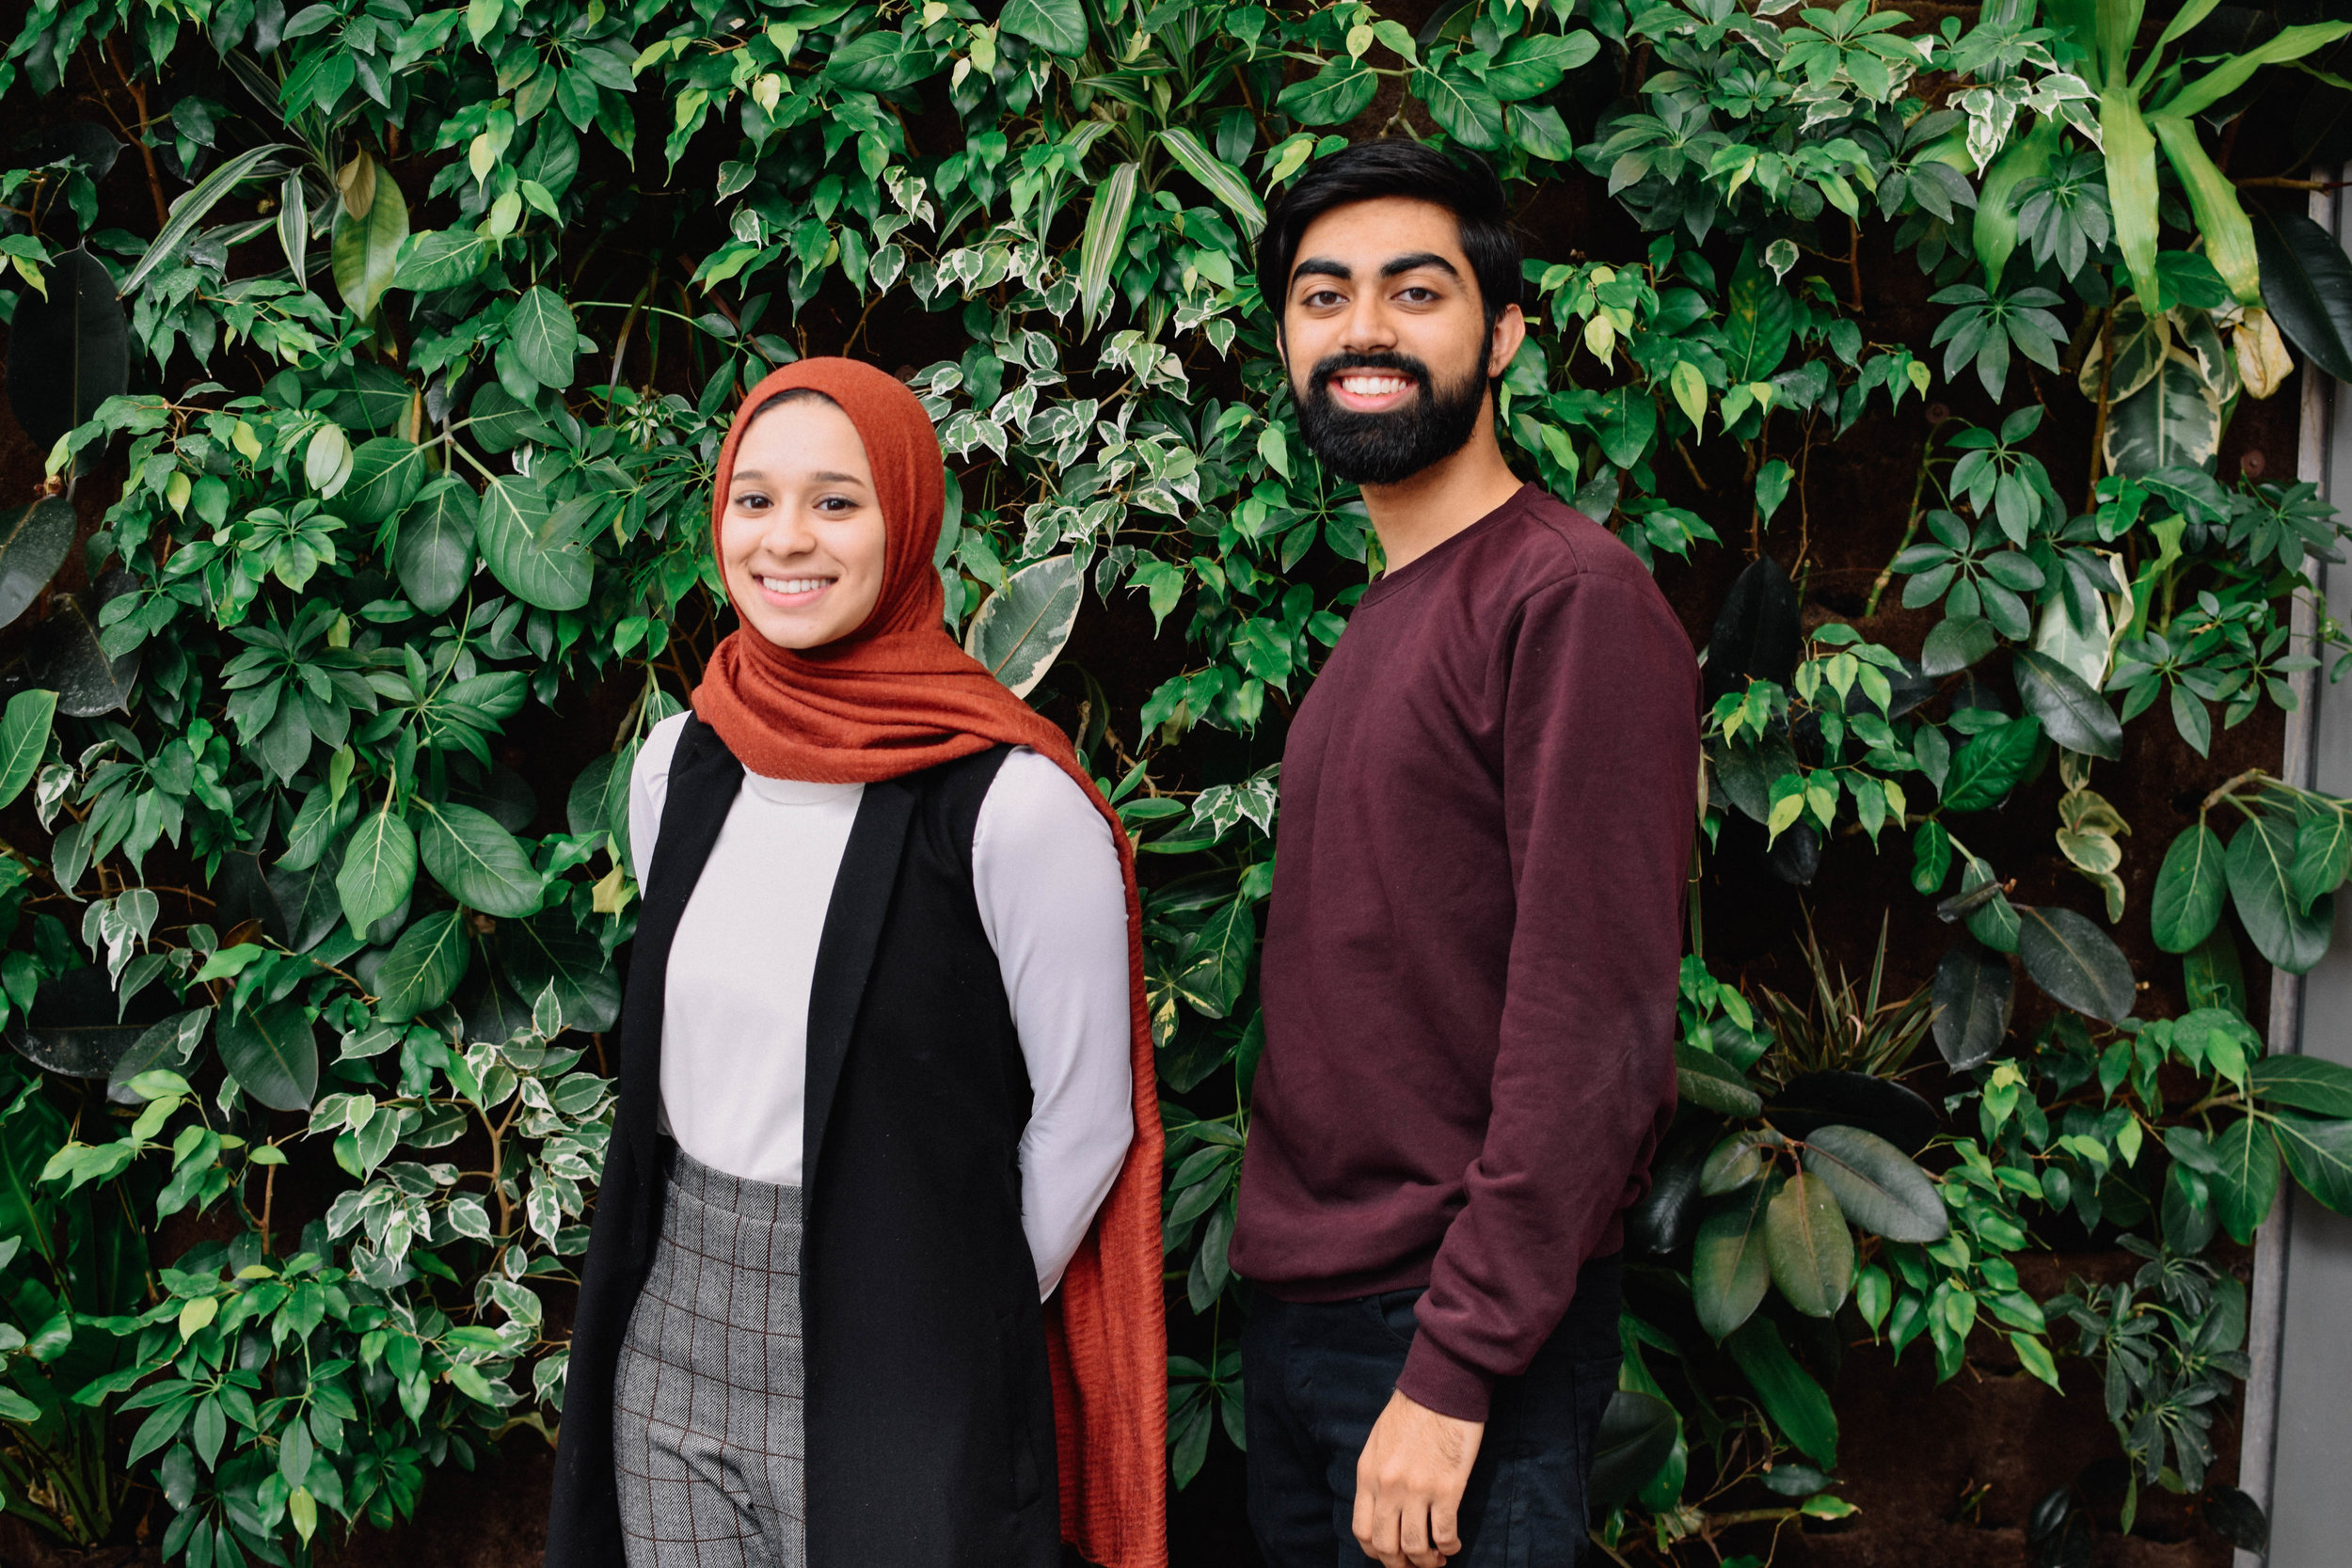 Prison Re-Entry Project - Providing digital literacy education and re-entry resources to formerly incarcerated individualsRIYAH BASHA, OMAR ILYAS